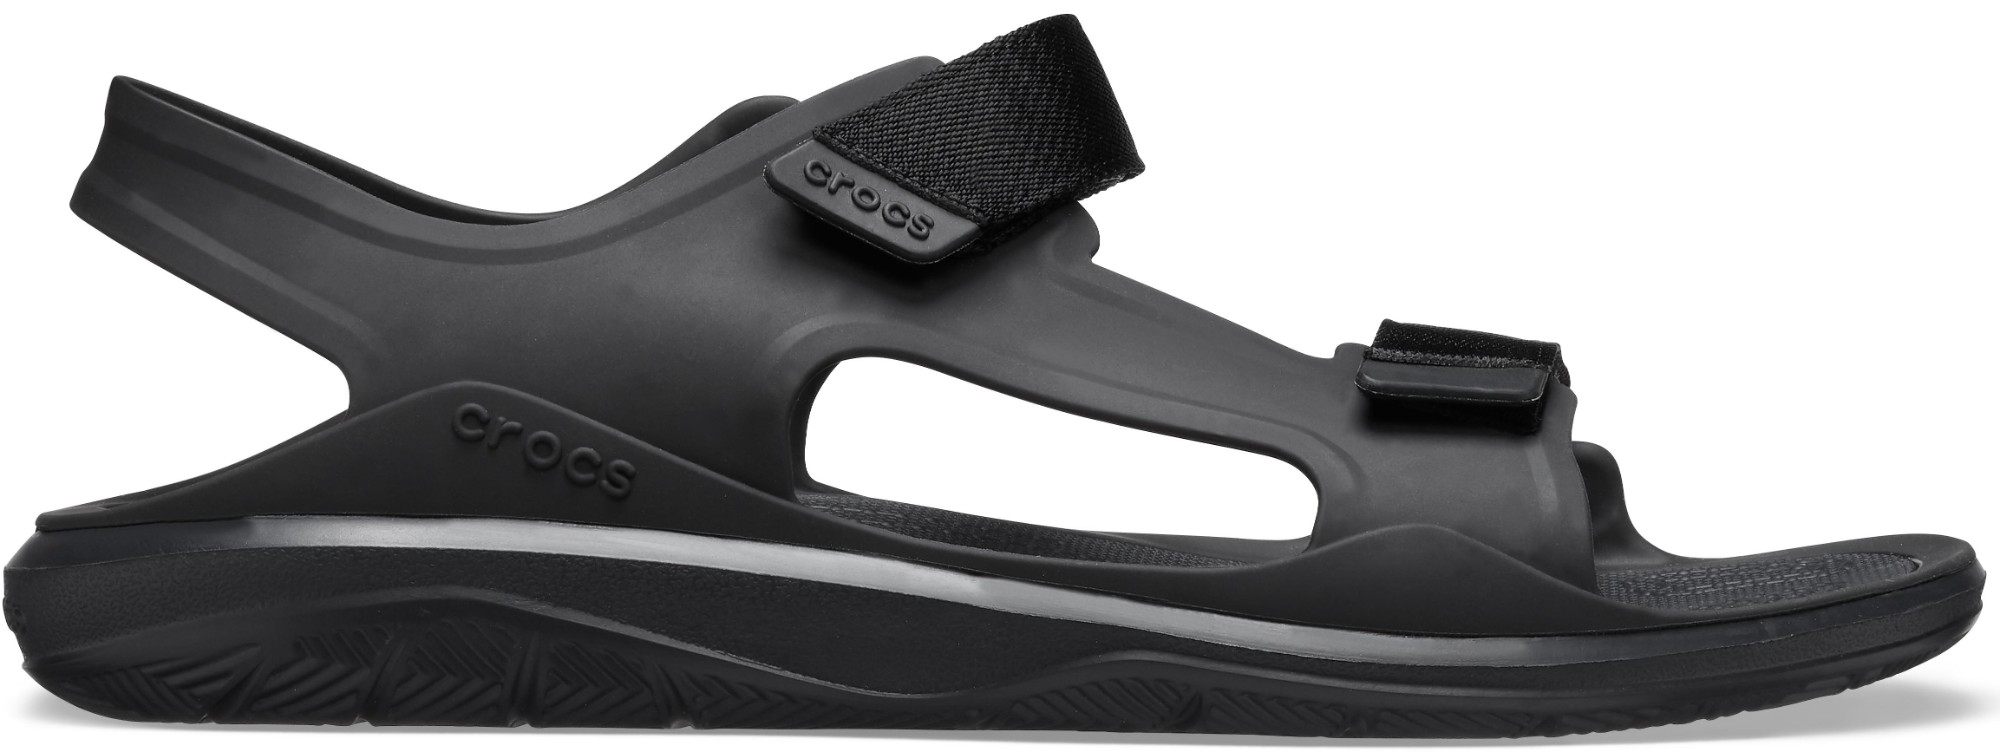 Crocs™ Swiftwater Molded Expedition Sandal Black/Black 45,5